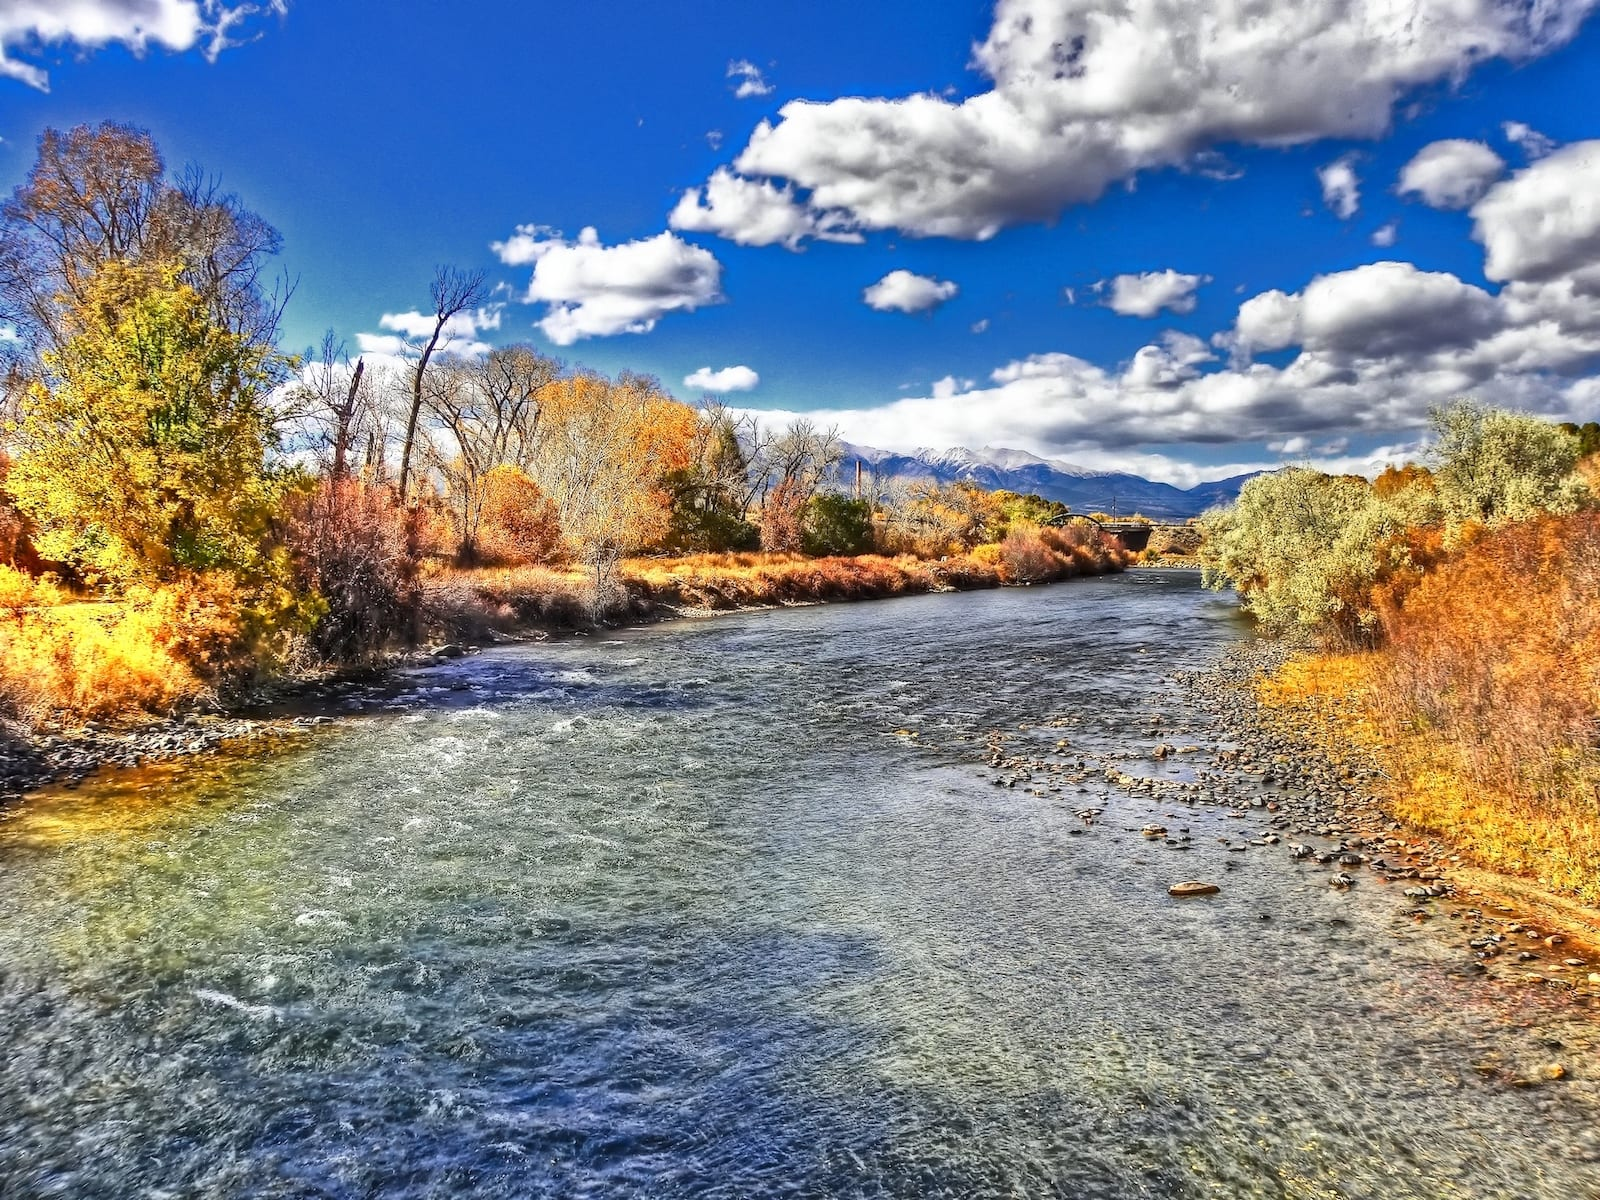 Arkansas river in October, CO